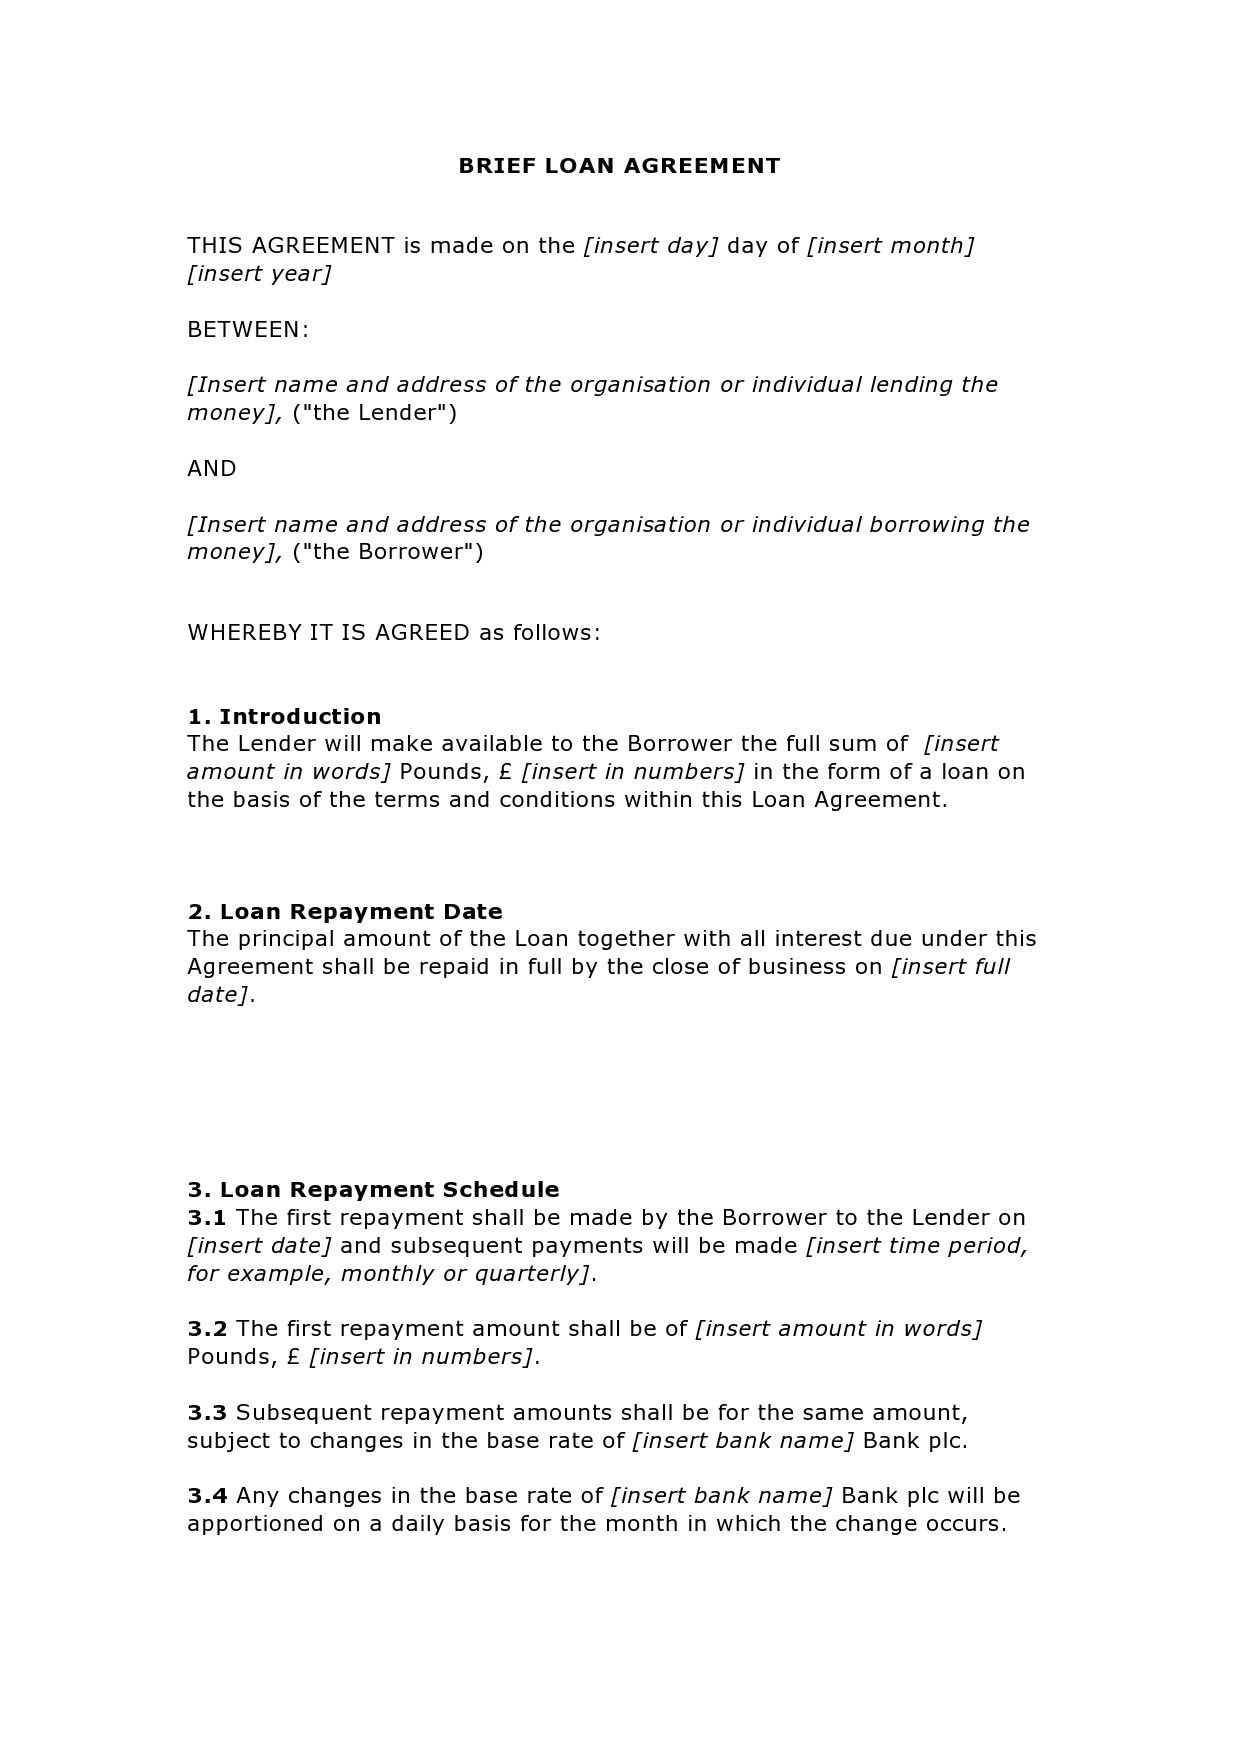 002 Unbelievable Simple Family Loan Agreement Template Australia High Def Full